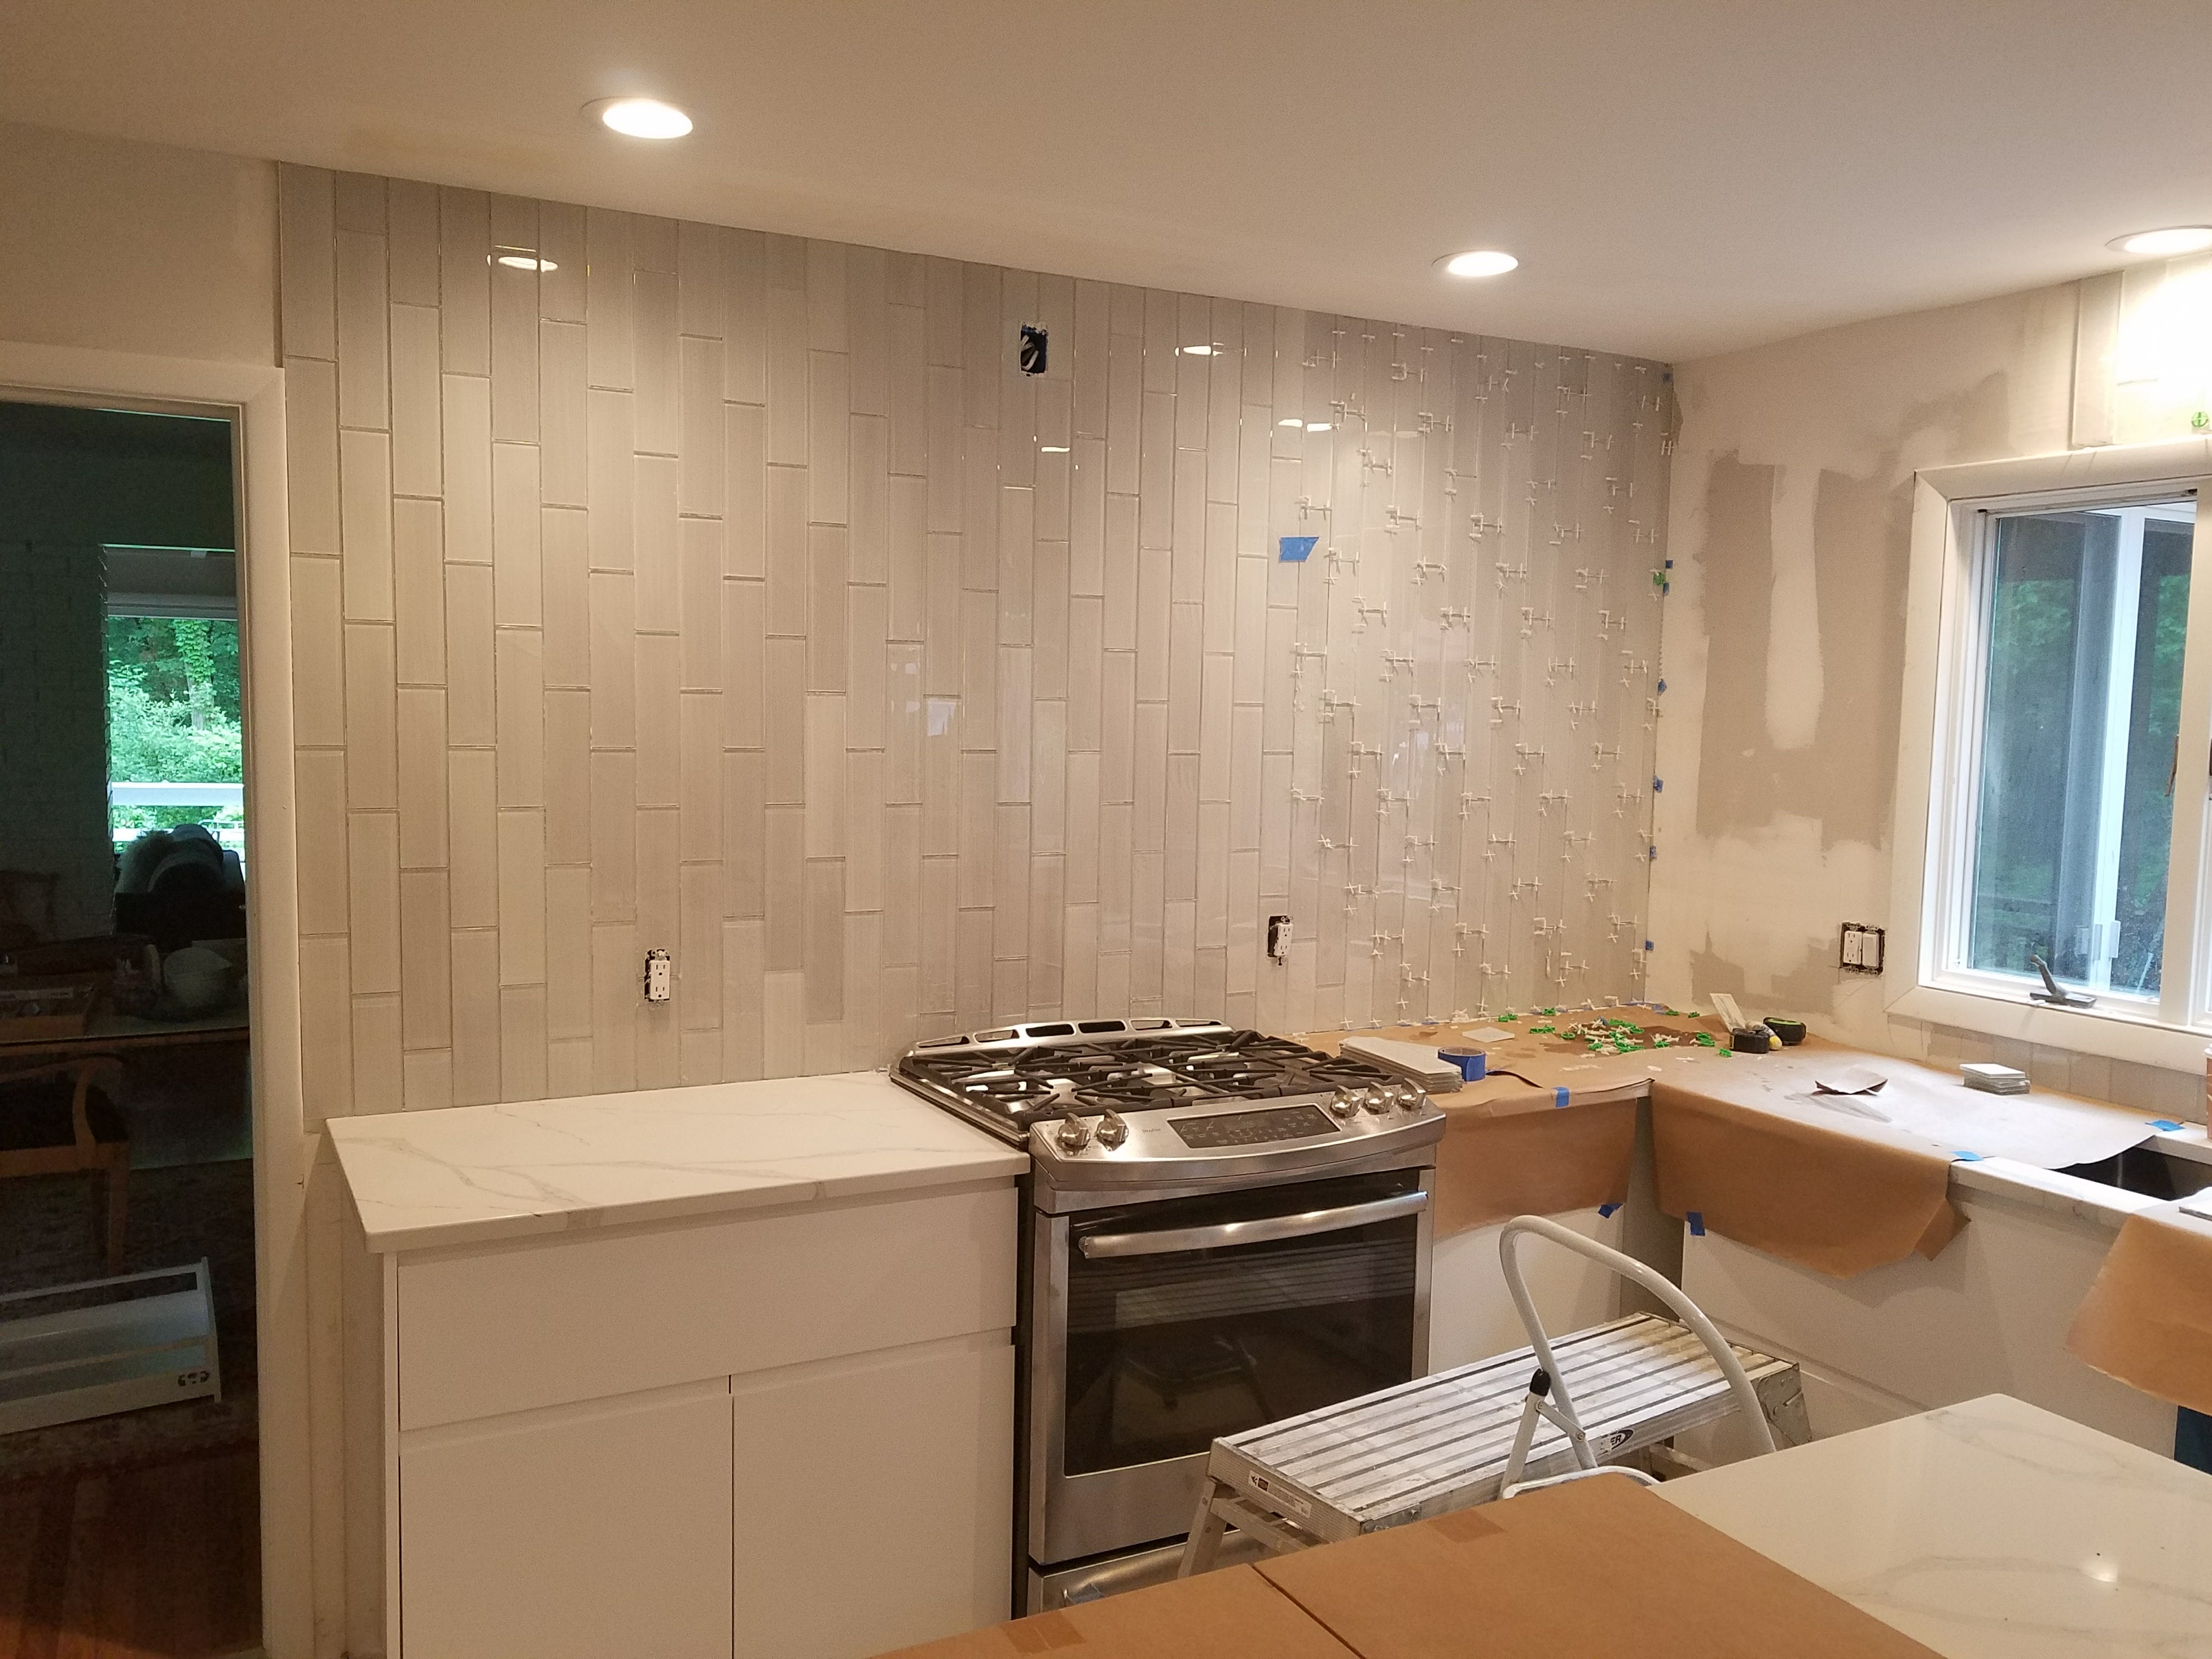 Bathroom Tile Layout - Tiling - Contractor Talk